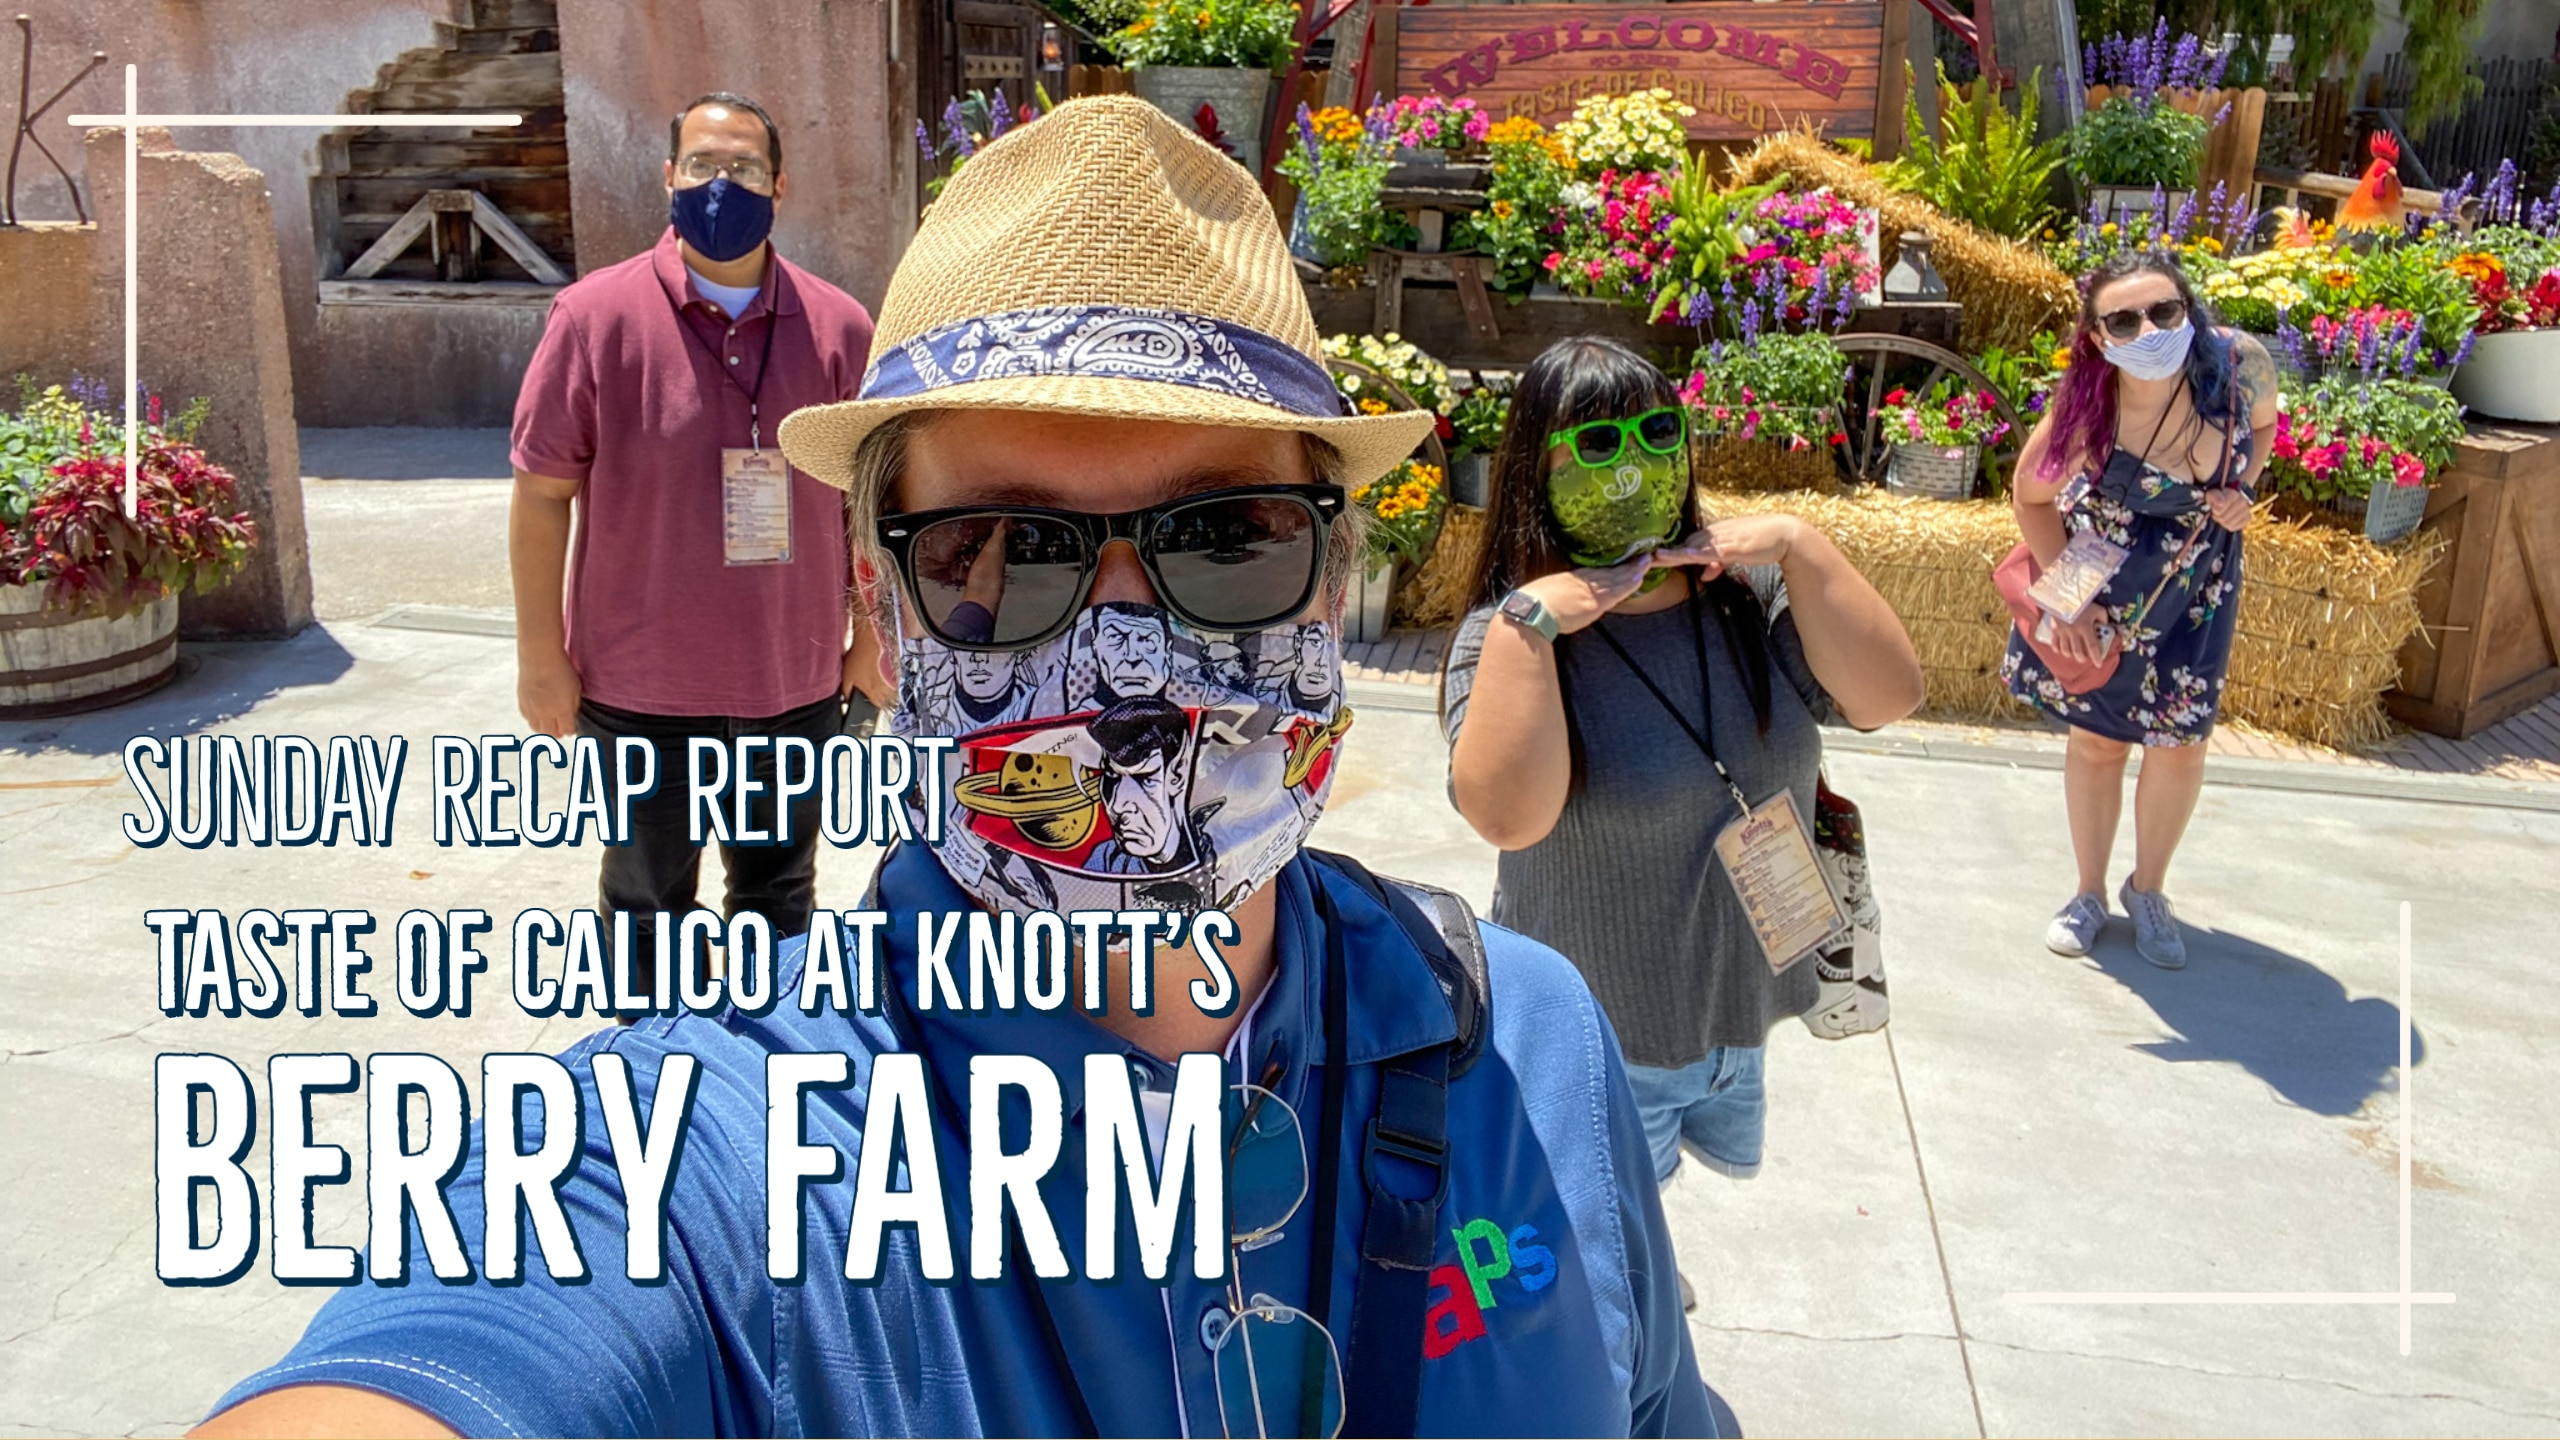 Sunday Recap Report – Taste of Calico at Knott's Berry Farm